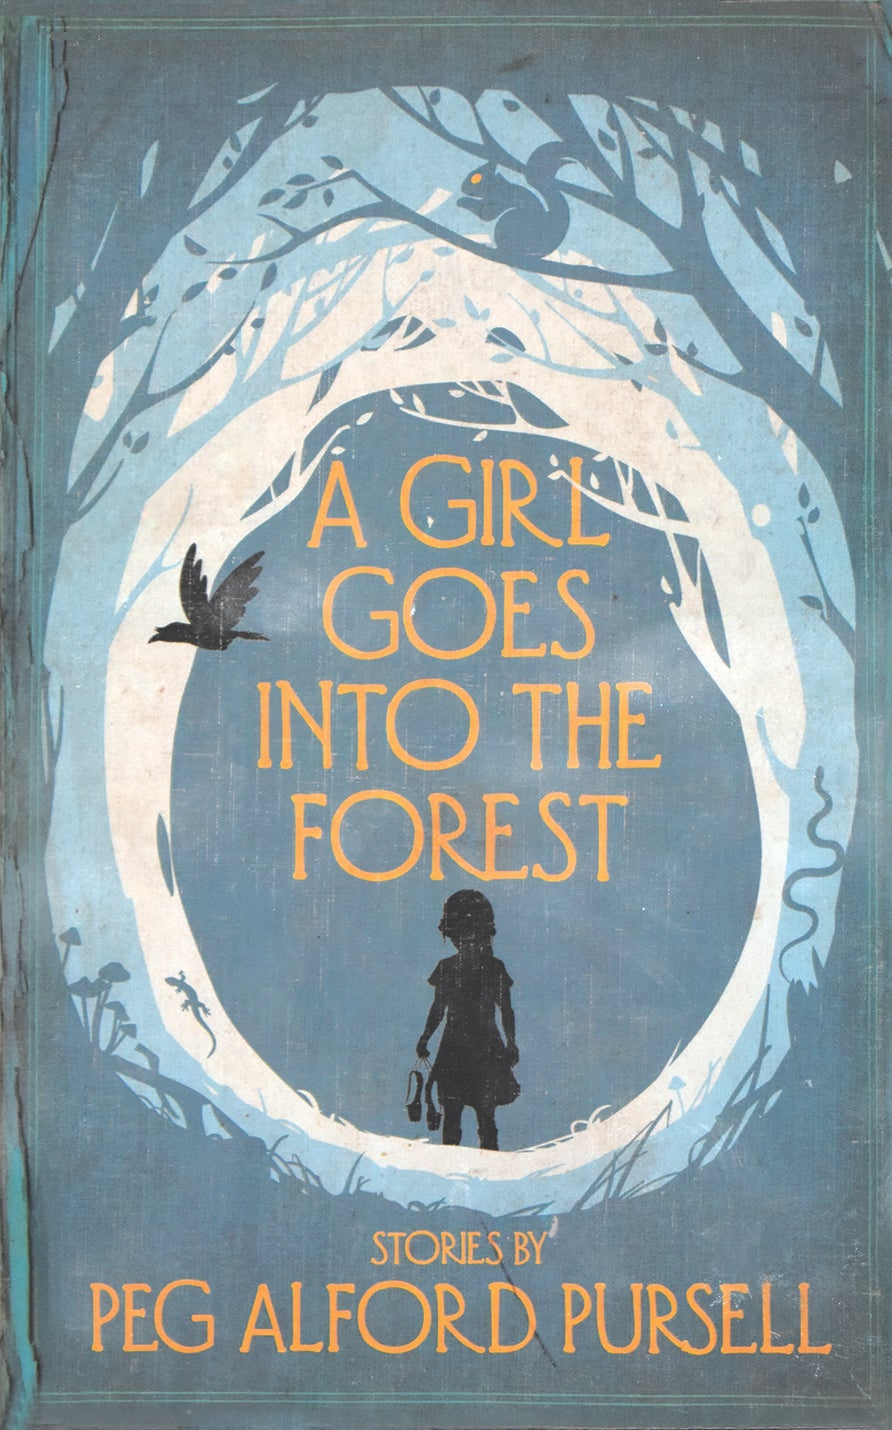 Cover of Peg Alford Pursell's book of short stories A Girl Goes into the Forest